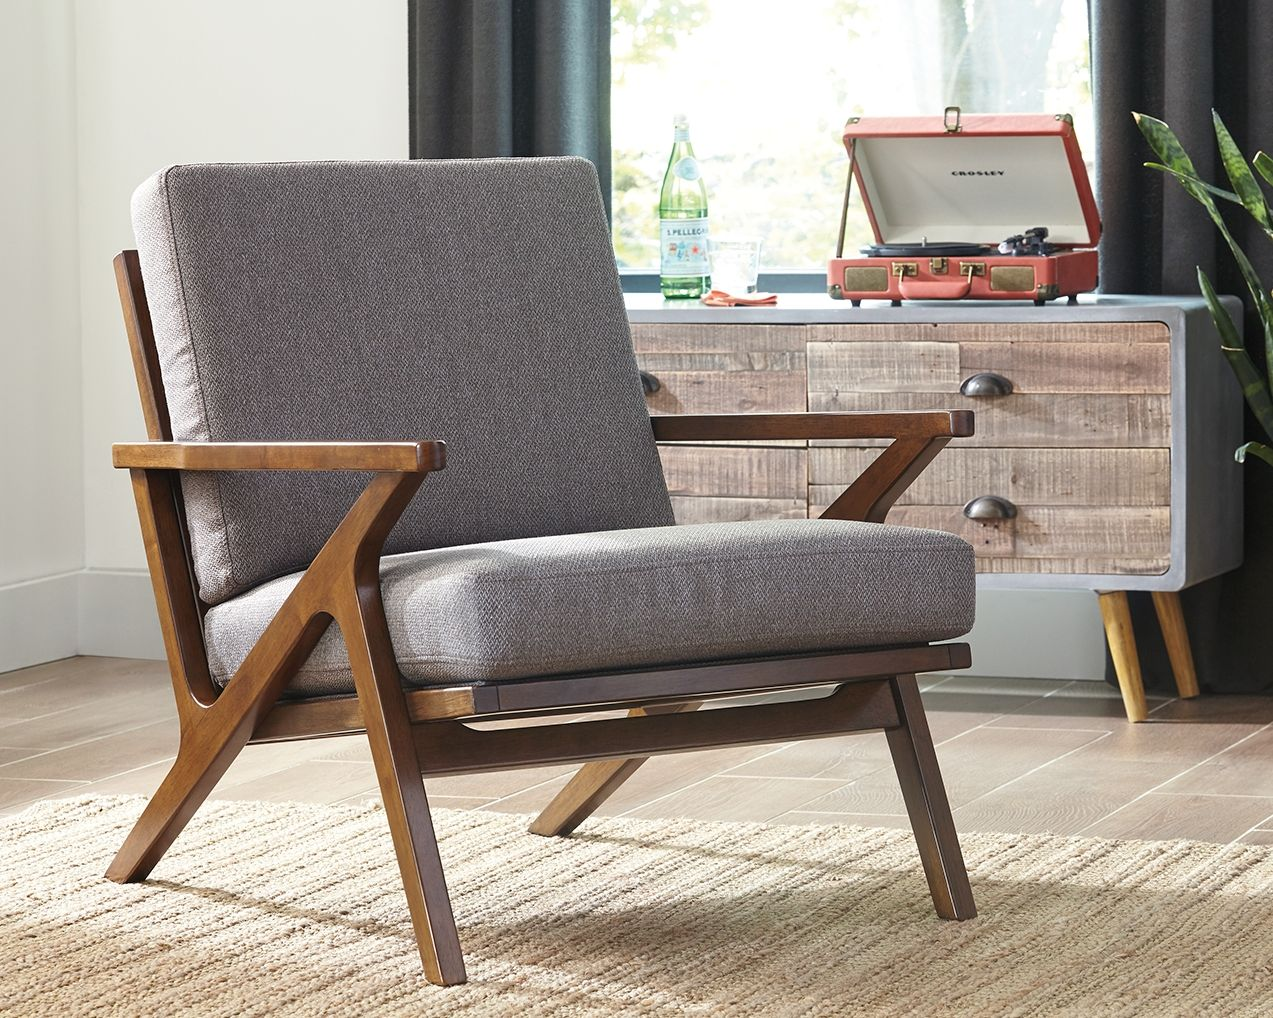 Wavecove accent chair brown